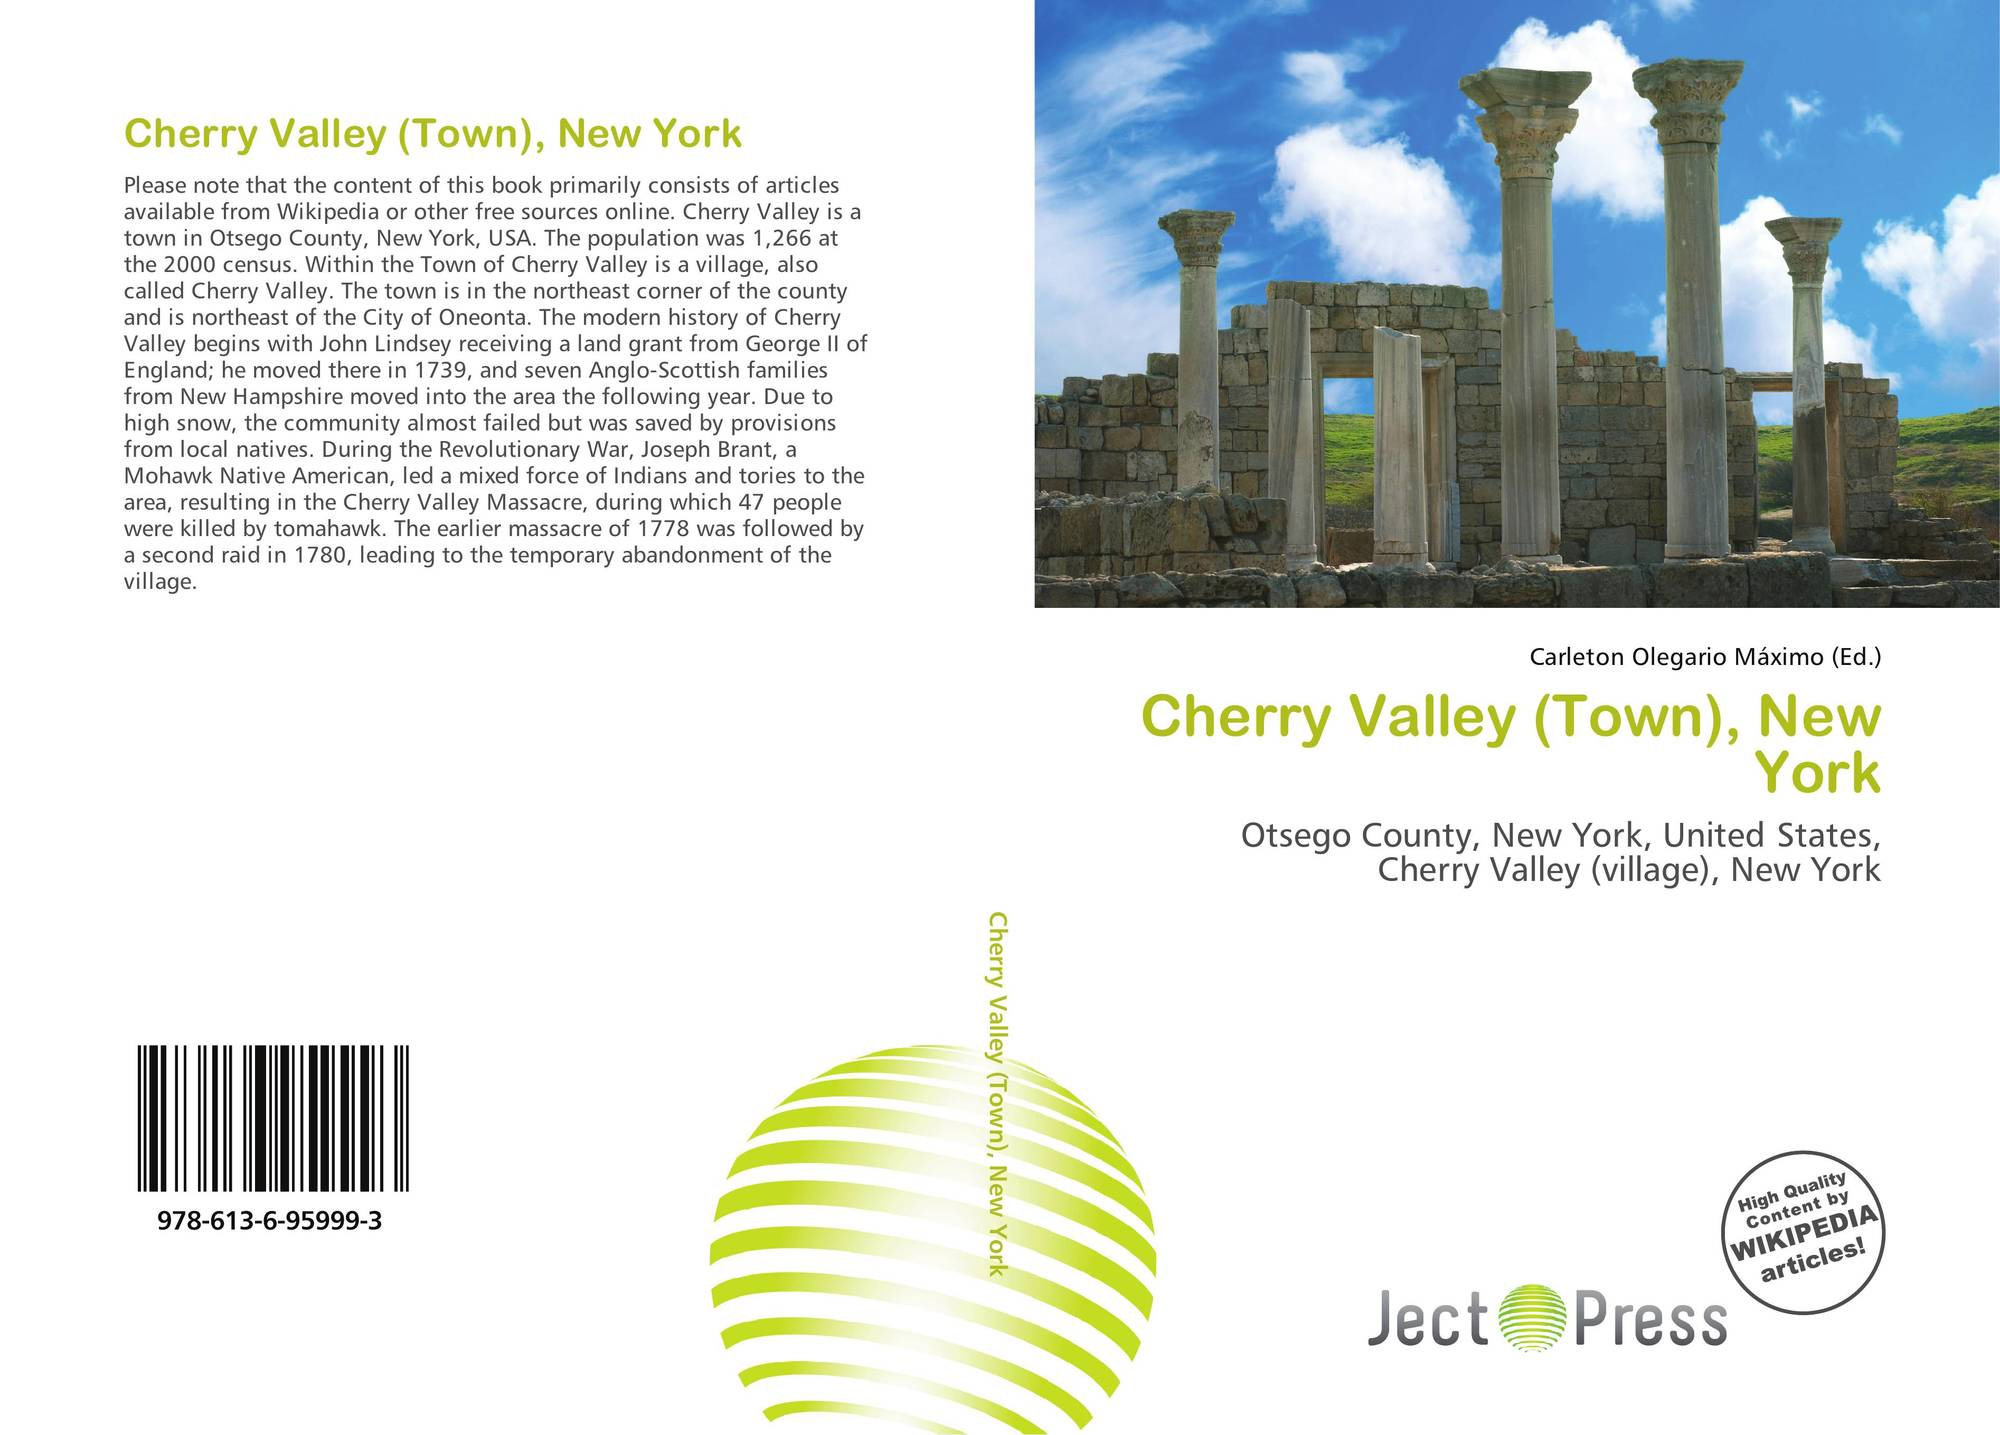 New york otsego county cherry valley - Bookcover Of Cherry Valley Town New York